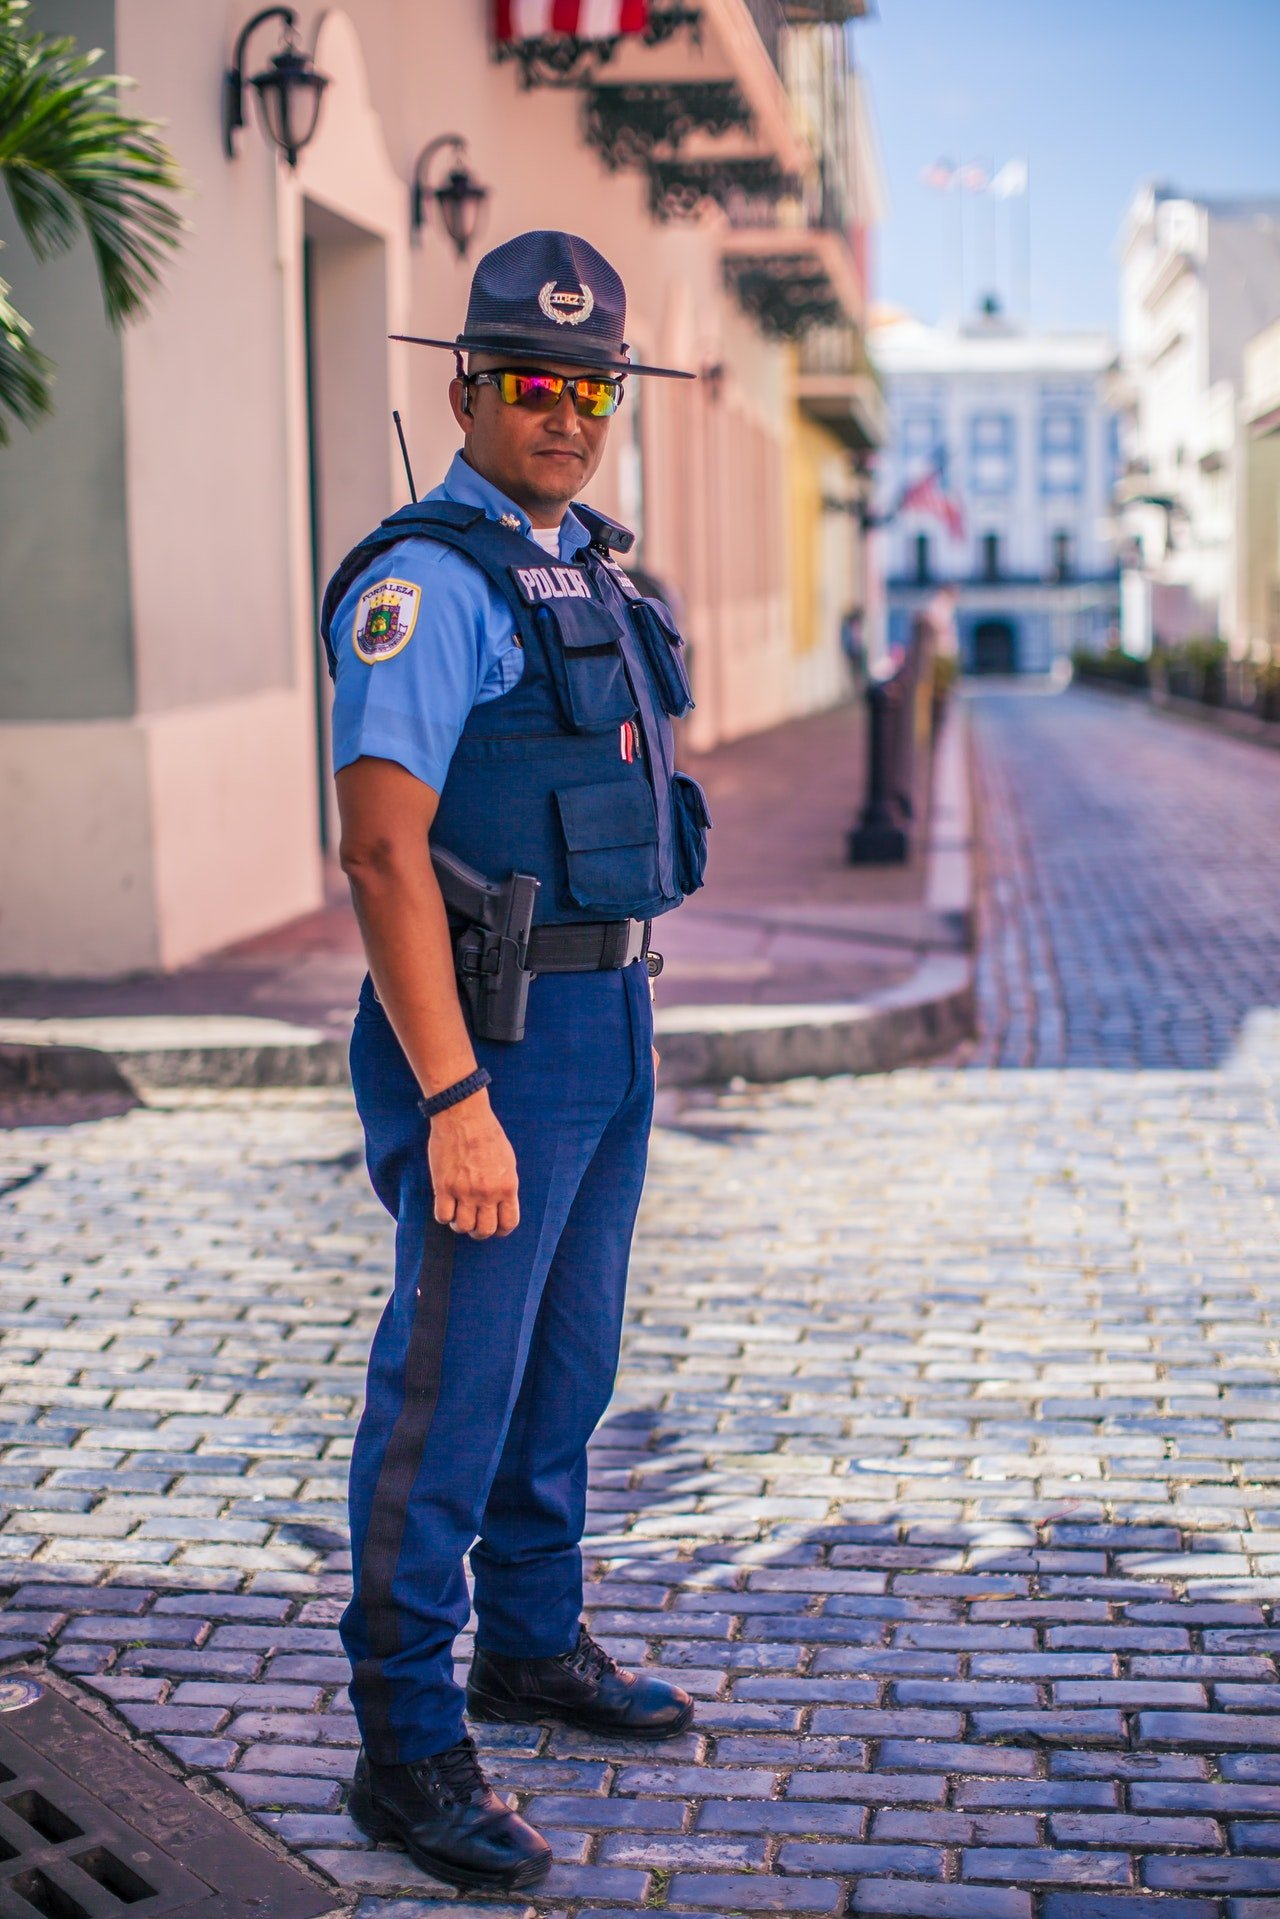 Photo of a police officer | Photo: Pexels